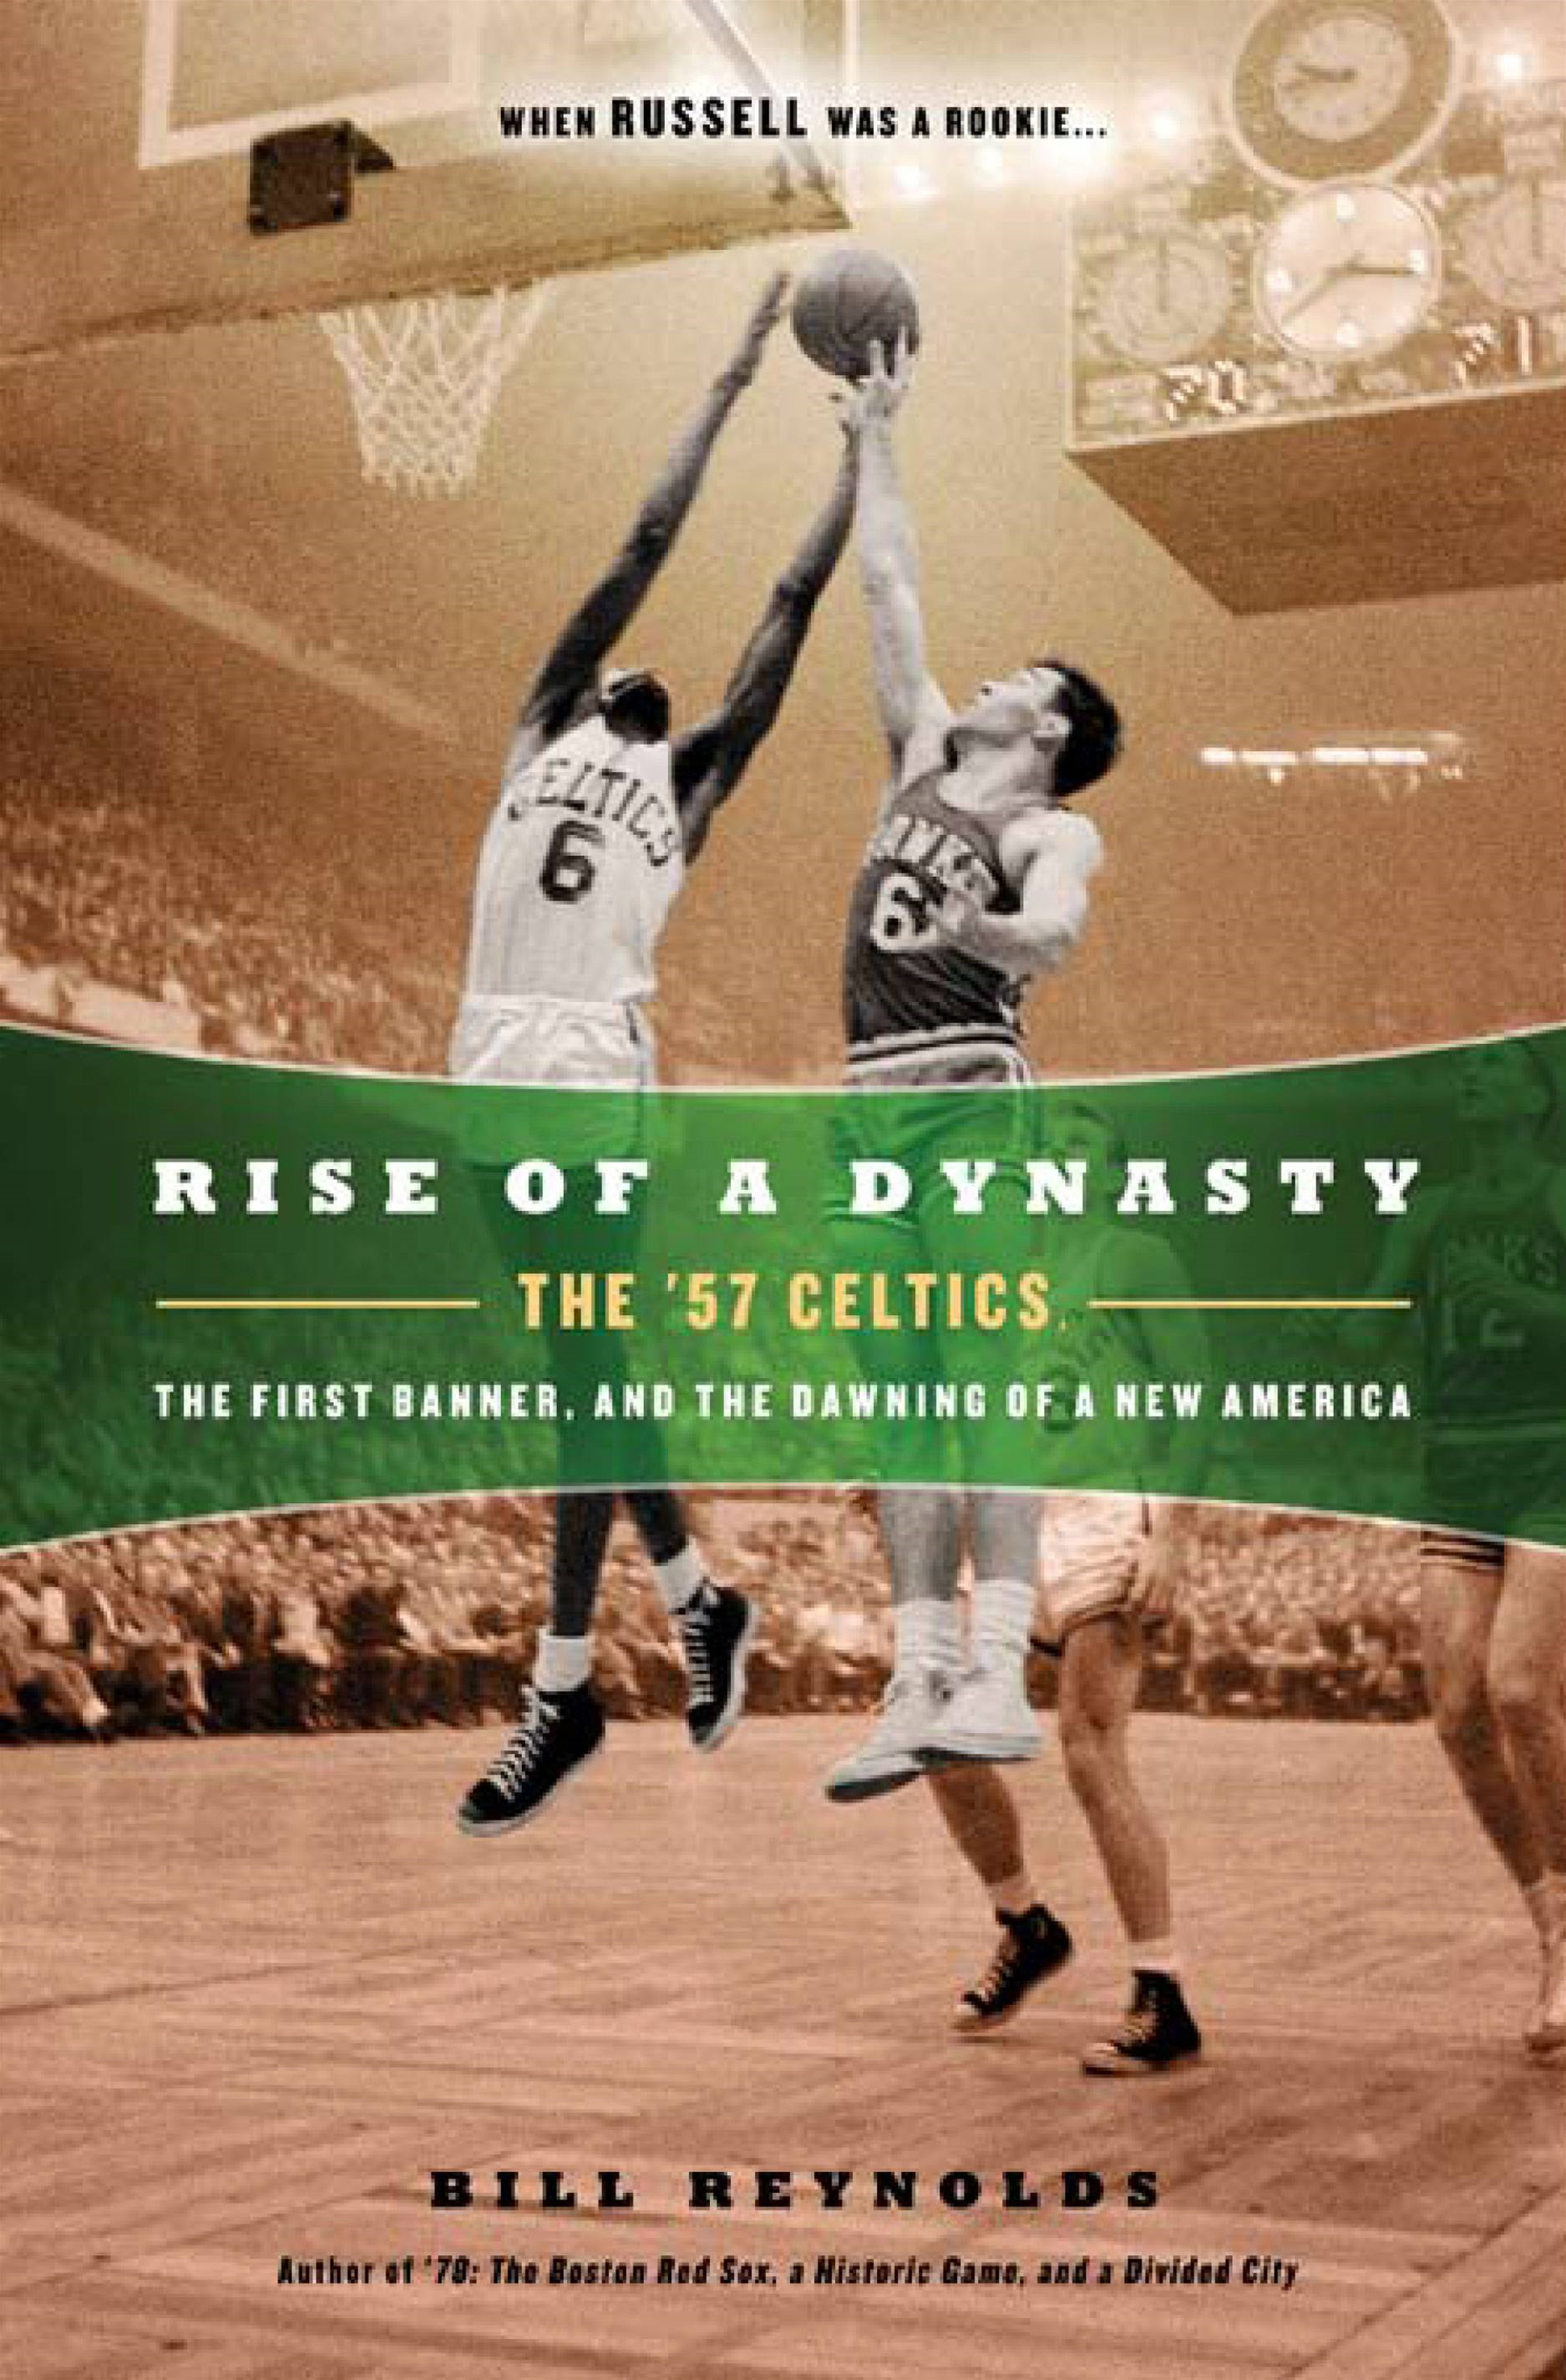 Rise of a Dynasty The '57 Celtics,  the First Banner,  and the Dawning of a NewAmerica